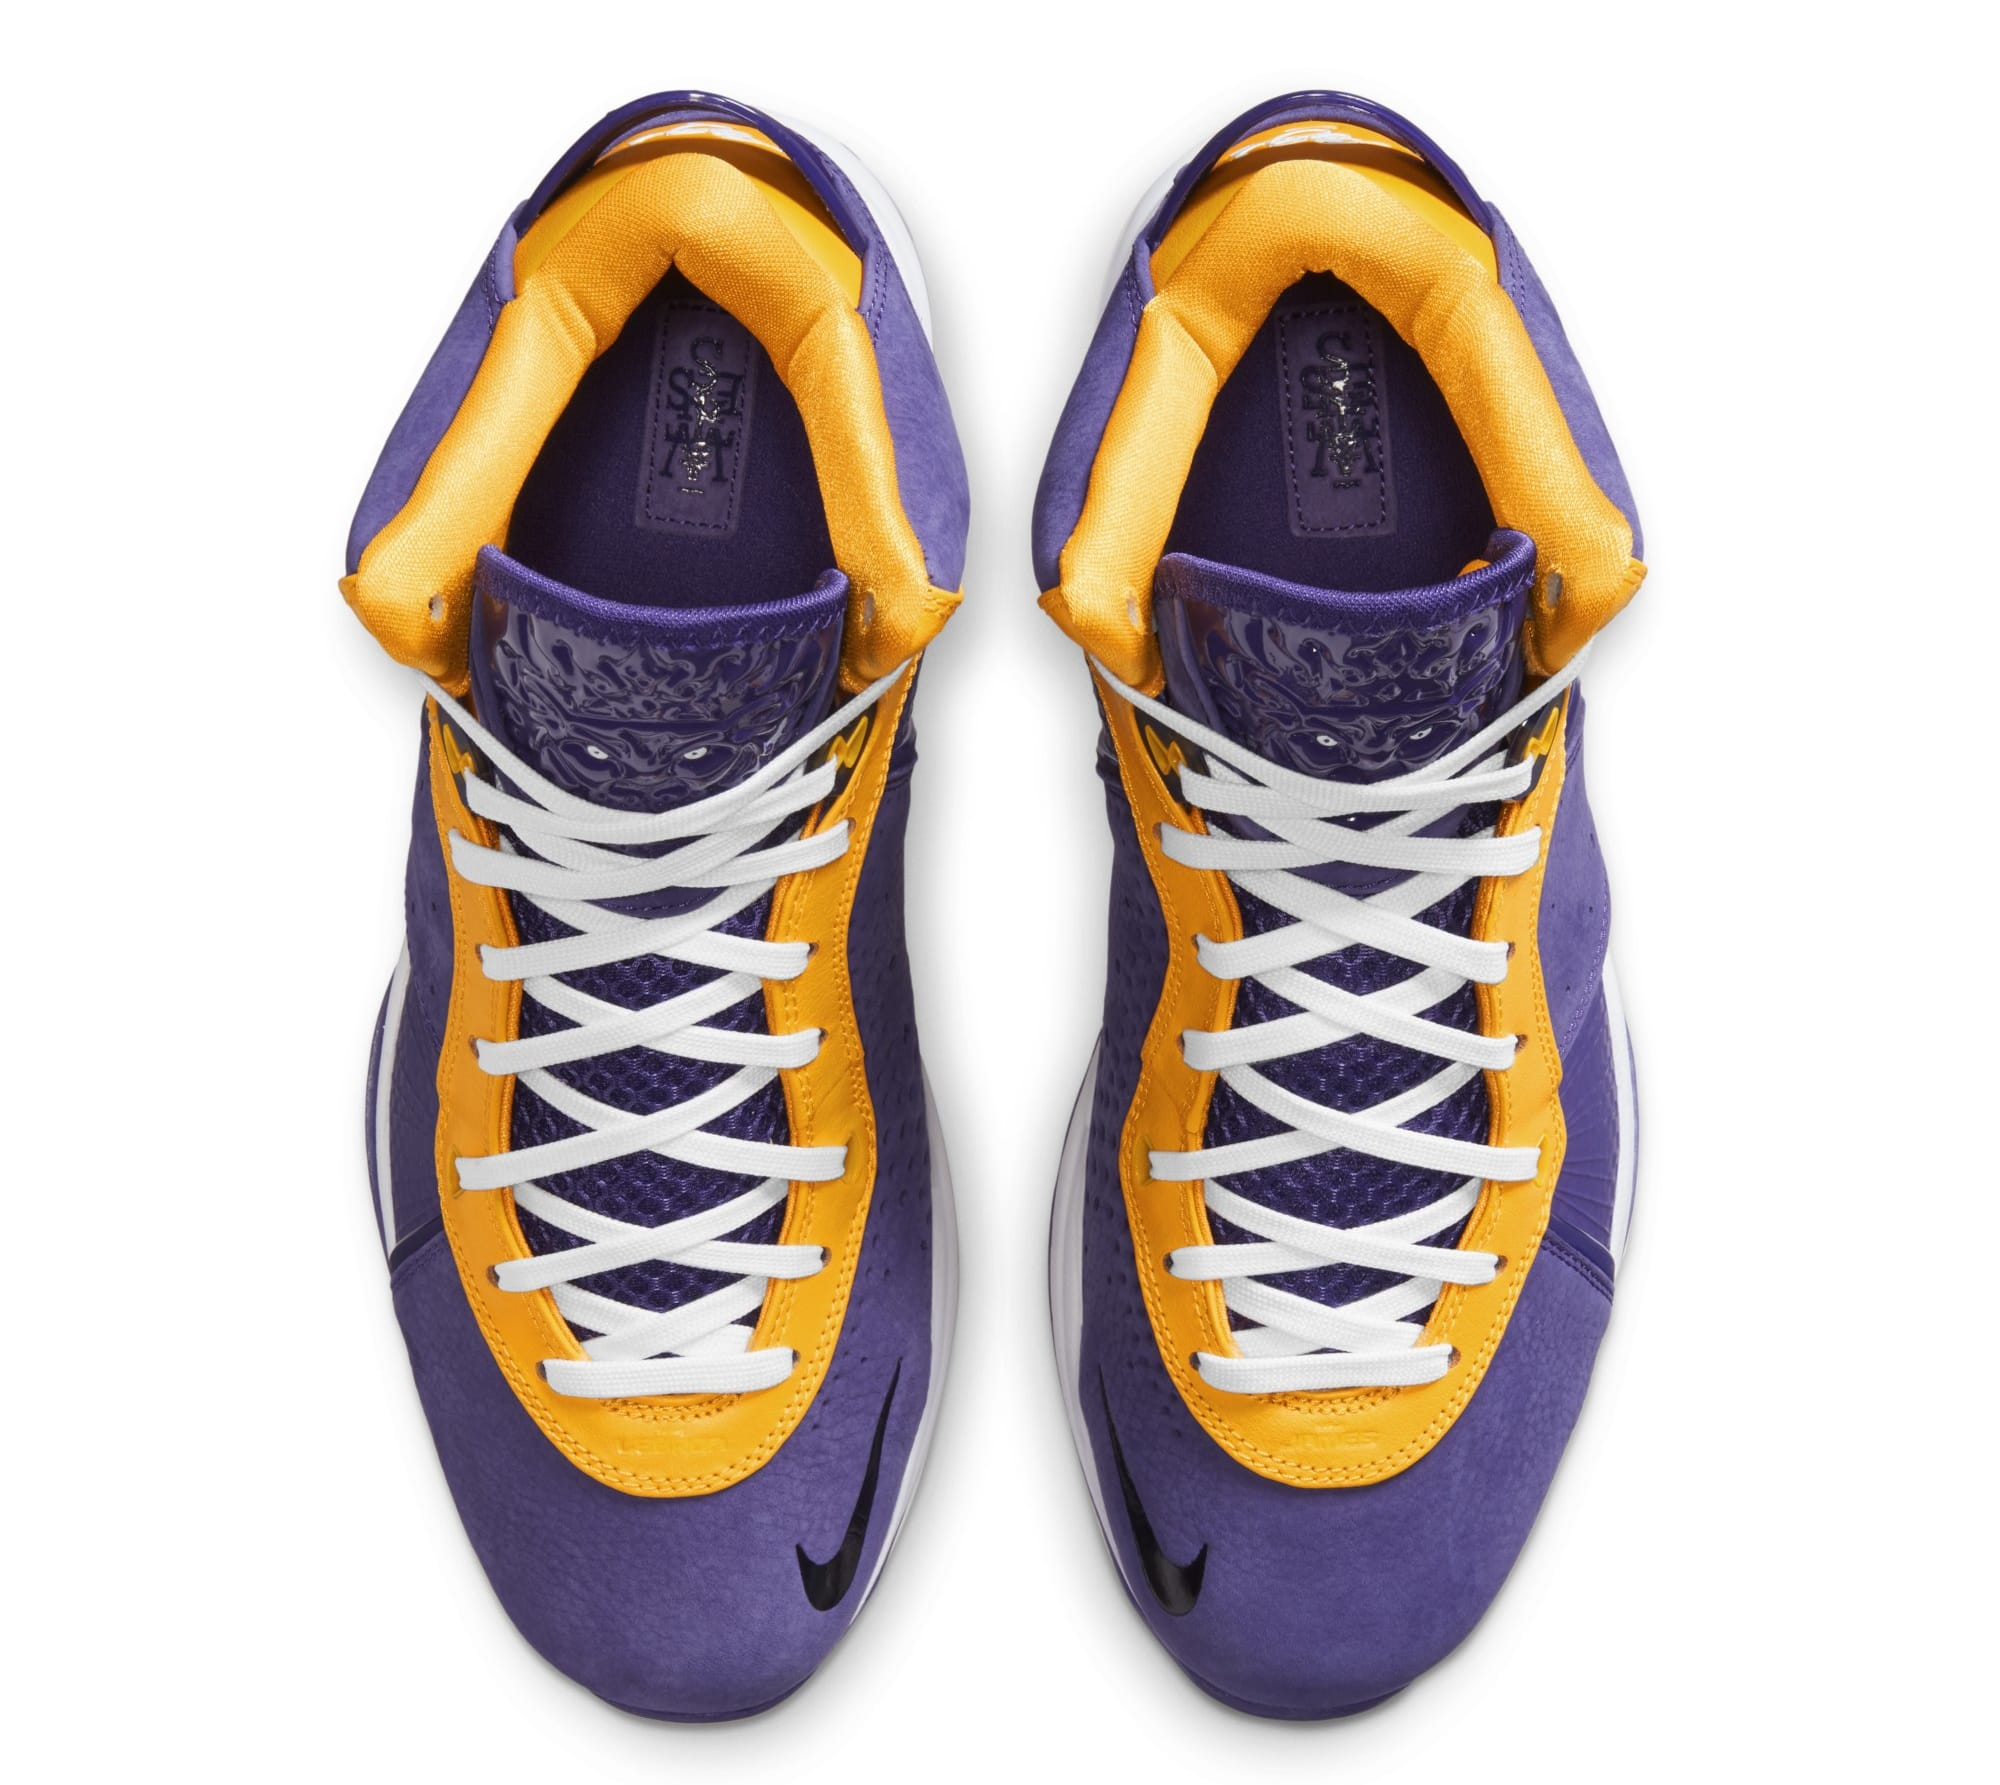 Nike LeBron 8 'Lakers' DC8380-500 (Top)